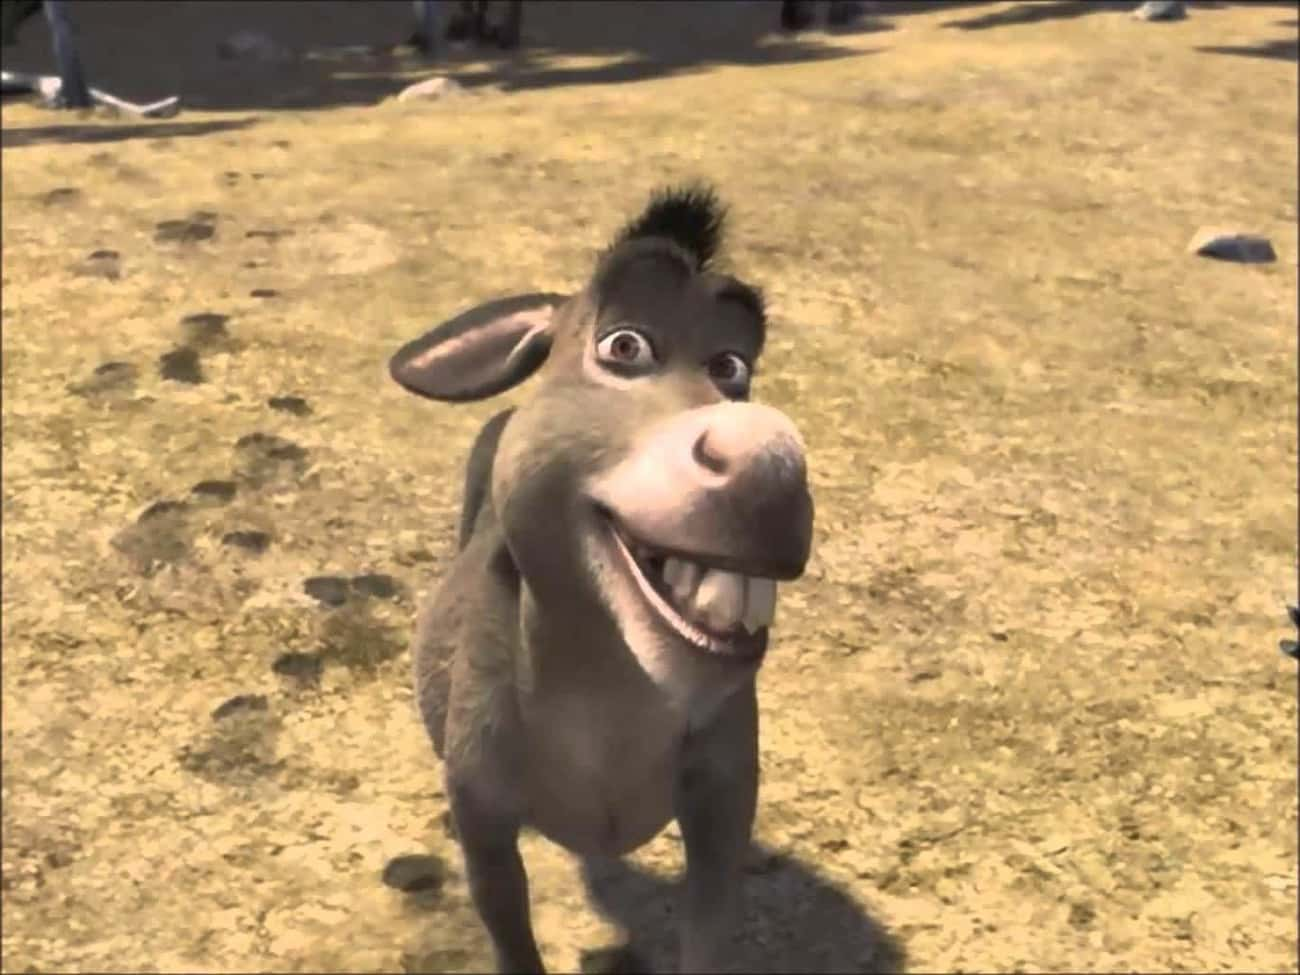 Donkey Was The Real MVP is listed (or ranked) 2 on the list 23 Weird 'Shrek' Thoughts That Actually Make A Good Point